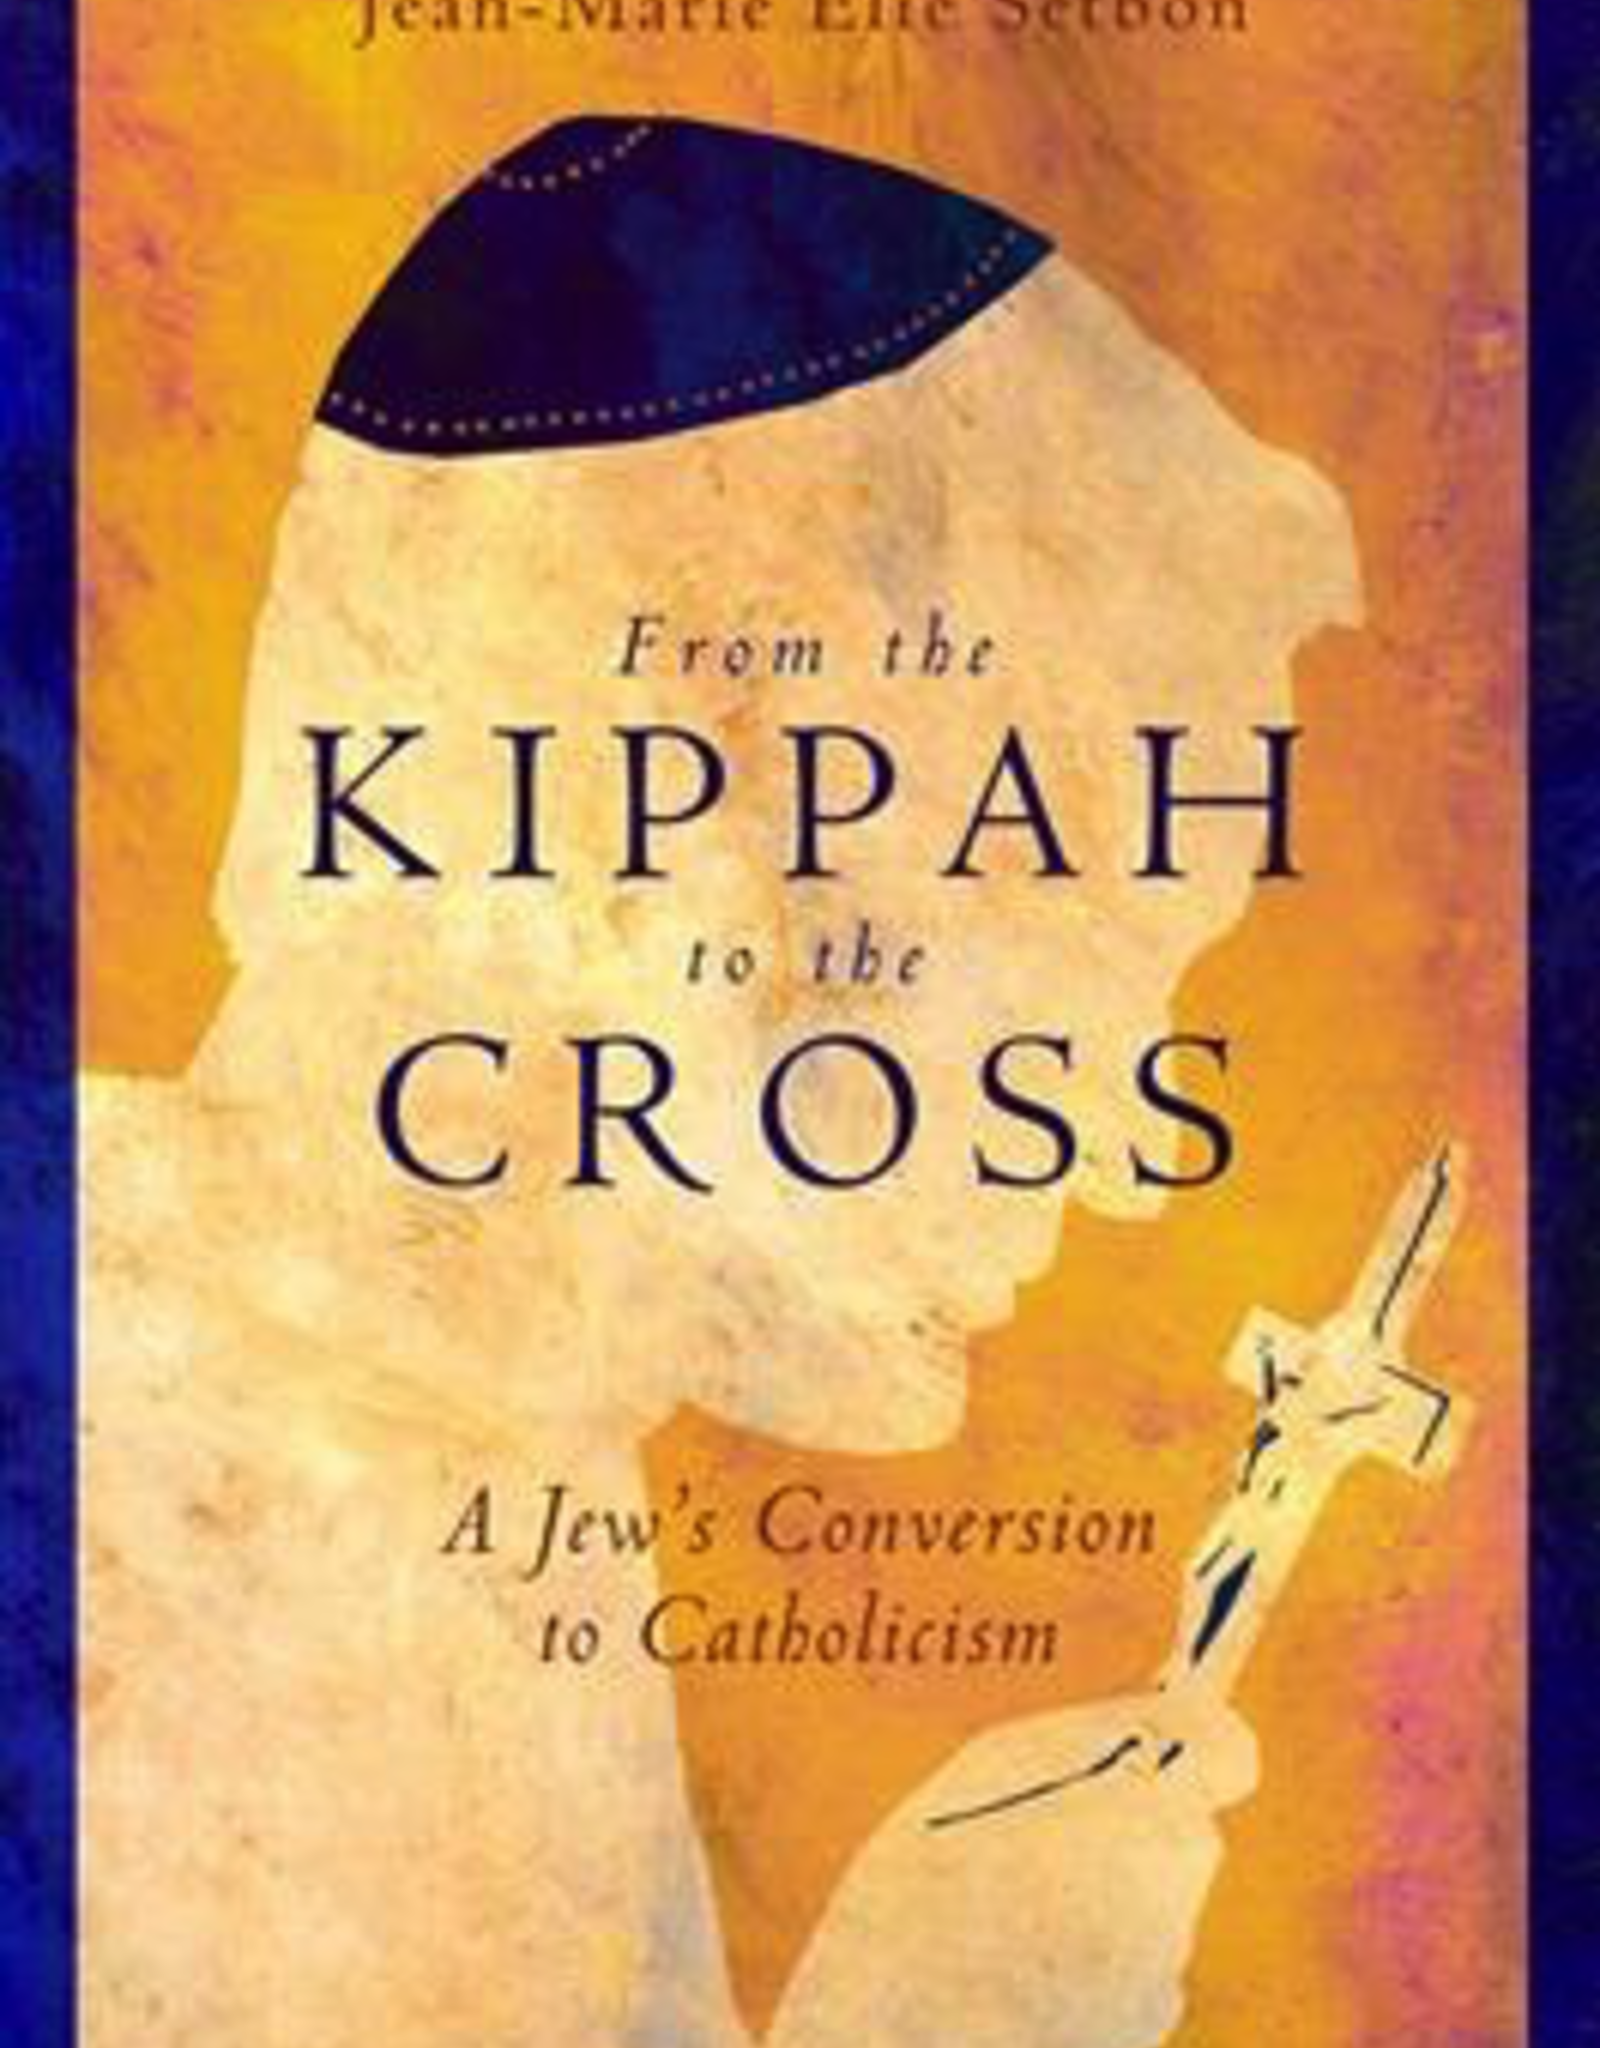 Ignatius Press From the Kippah to the Cross:  A Jew's Conversion to Catholicism, by Jean-Marie Elie Setbon (paperback)